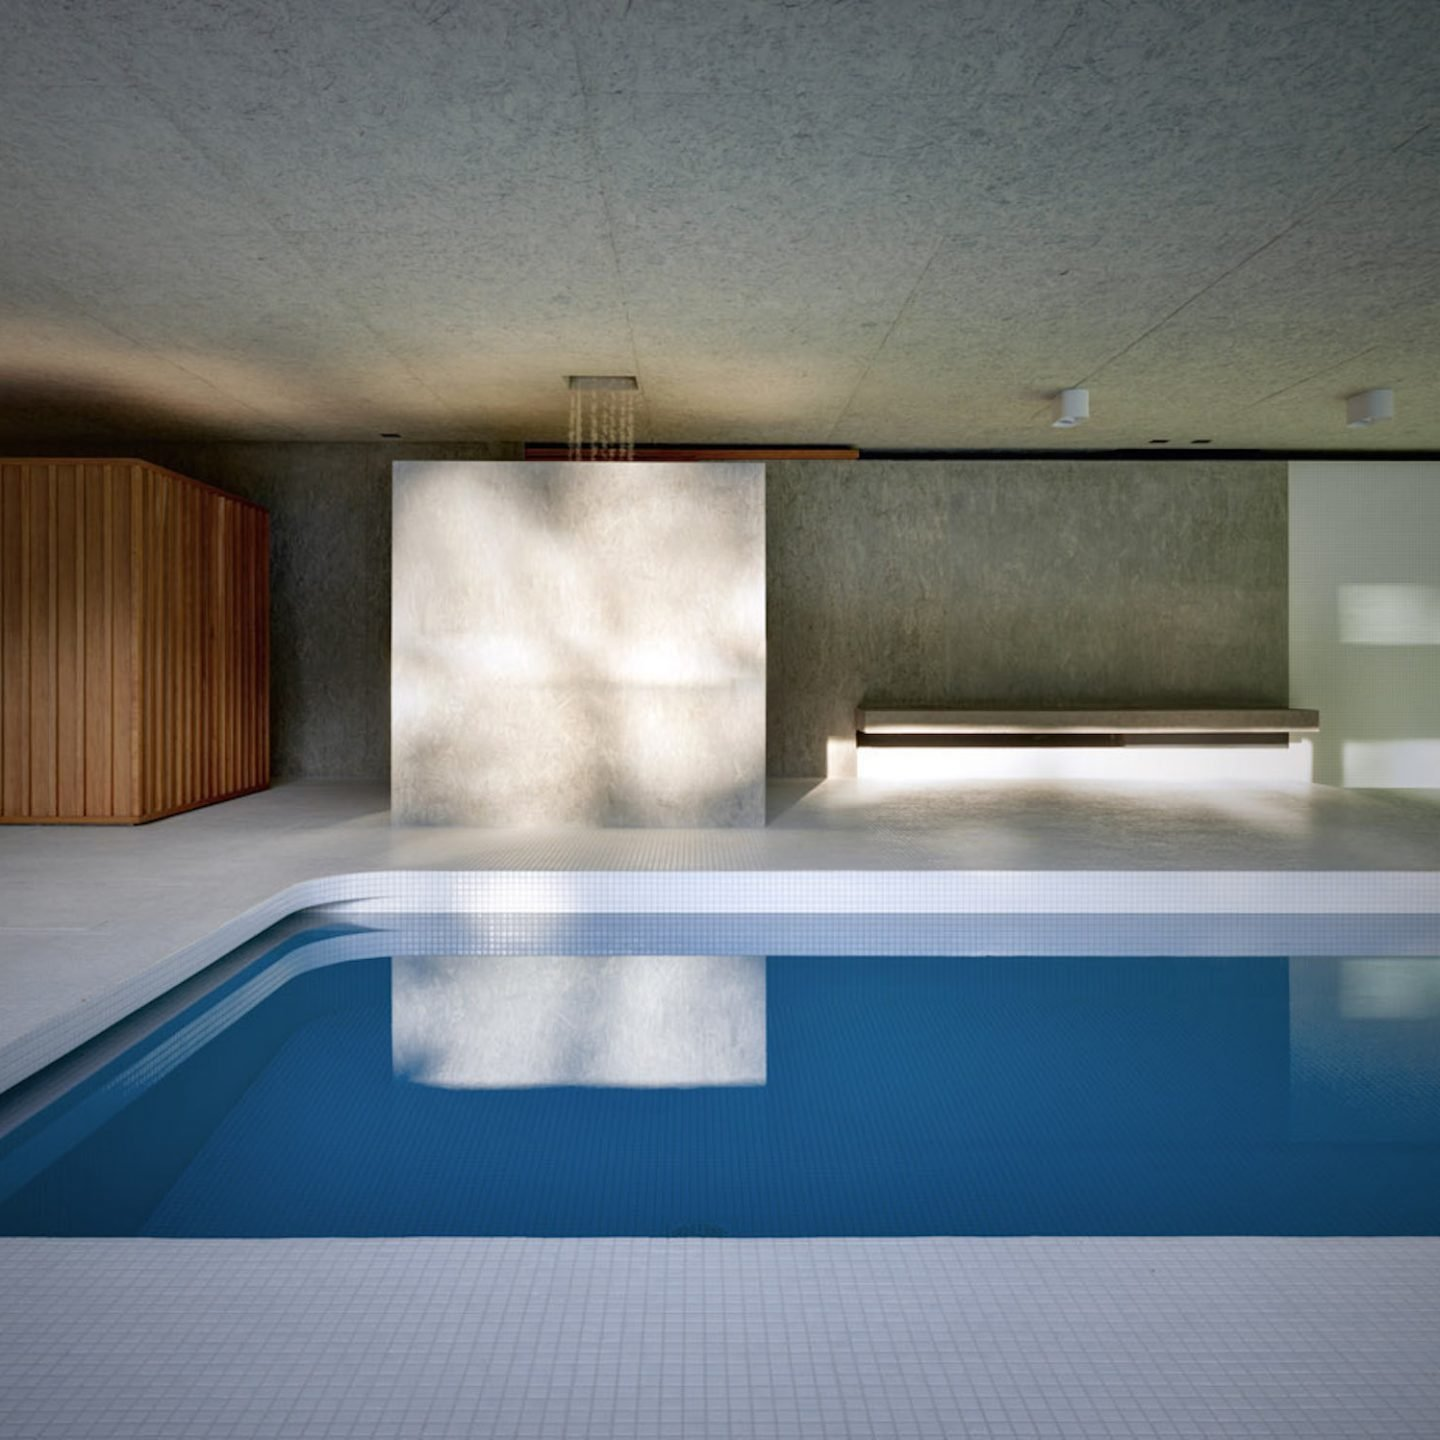 header_architecture_lapiscinadelroccolo_swimmingpool_pavillion_06